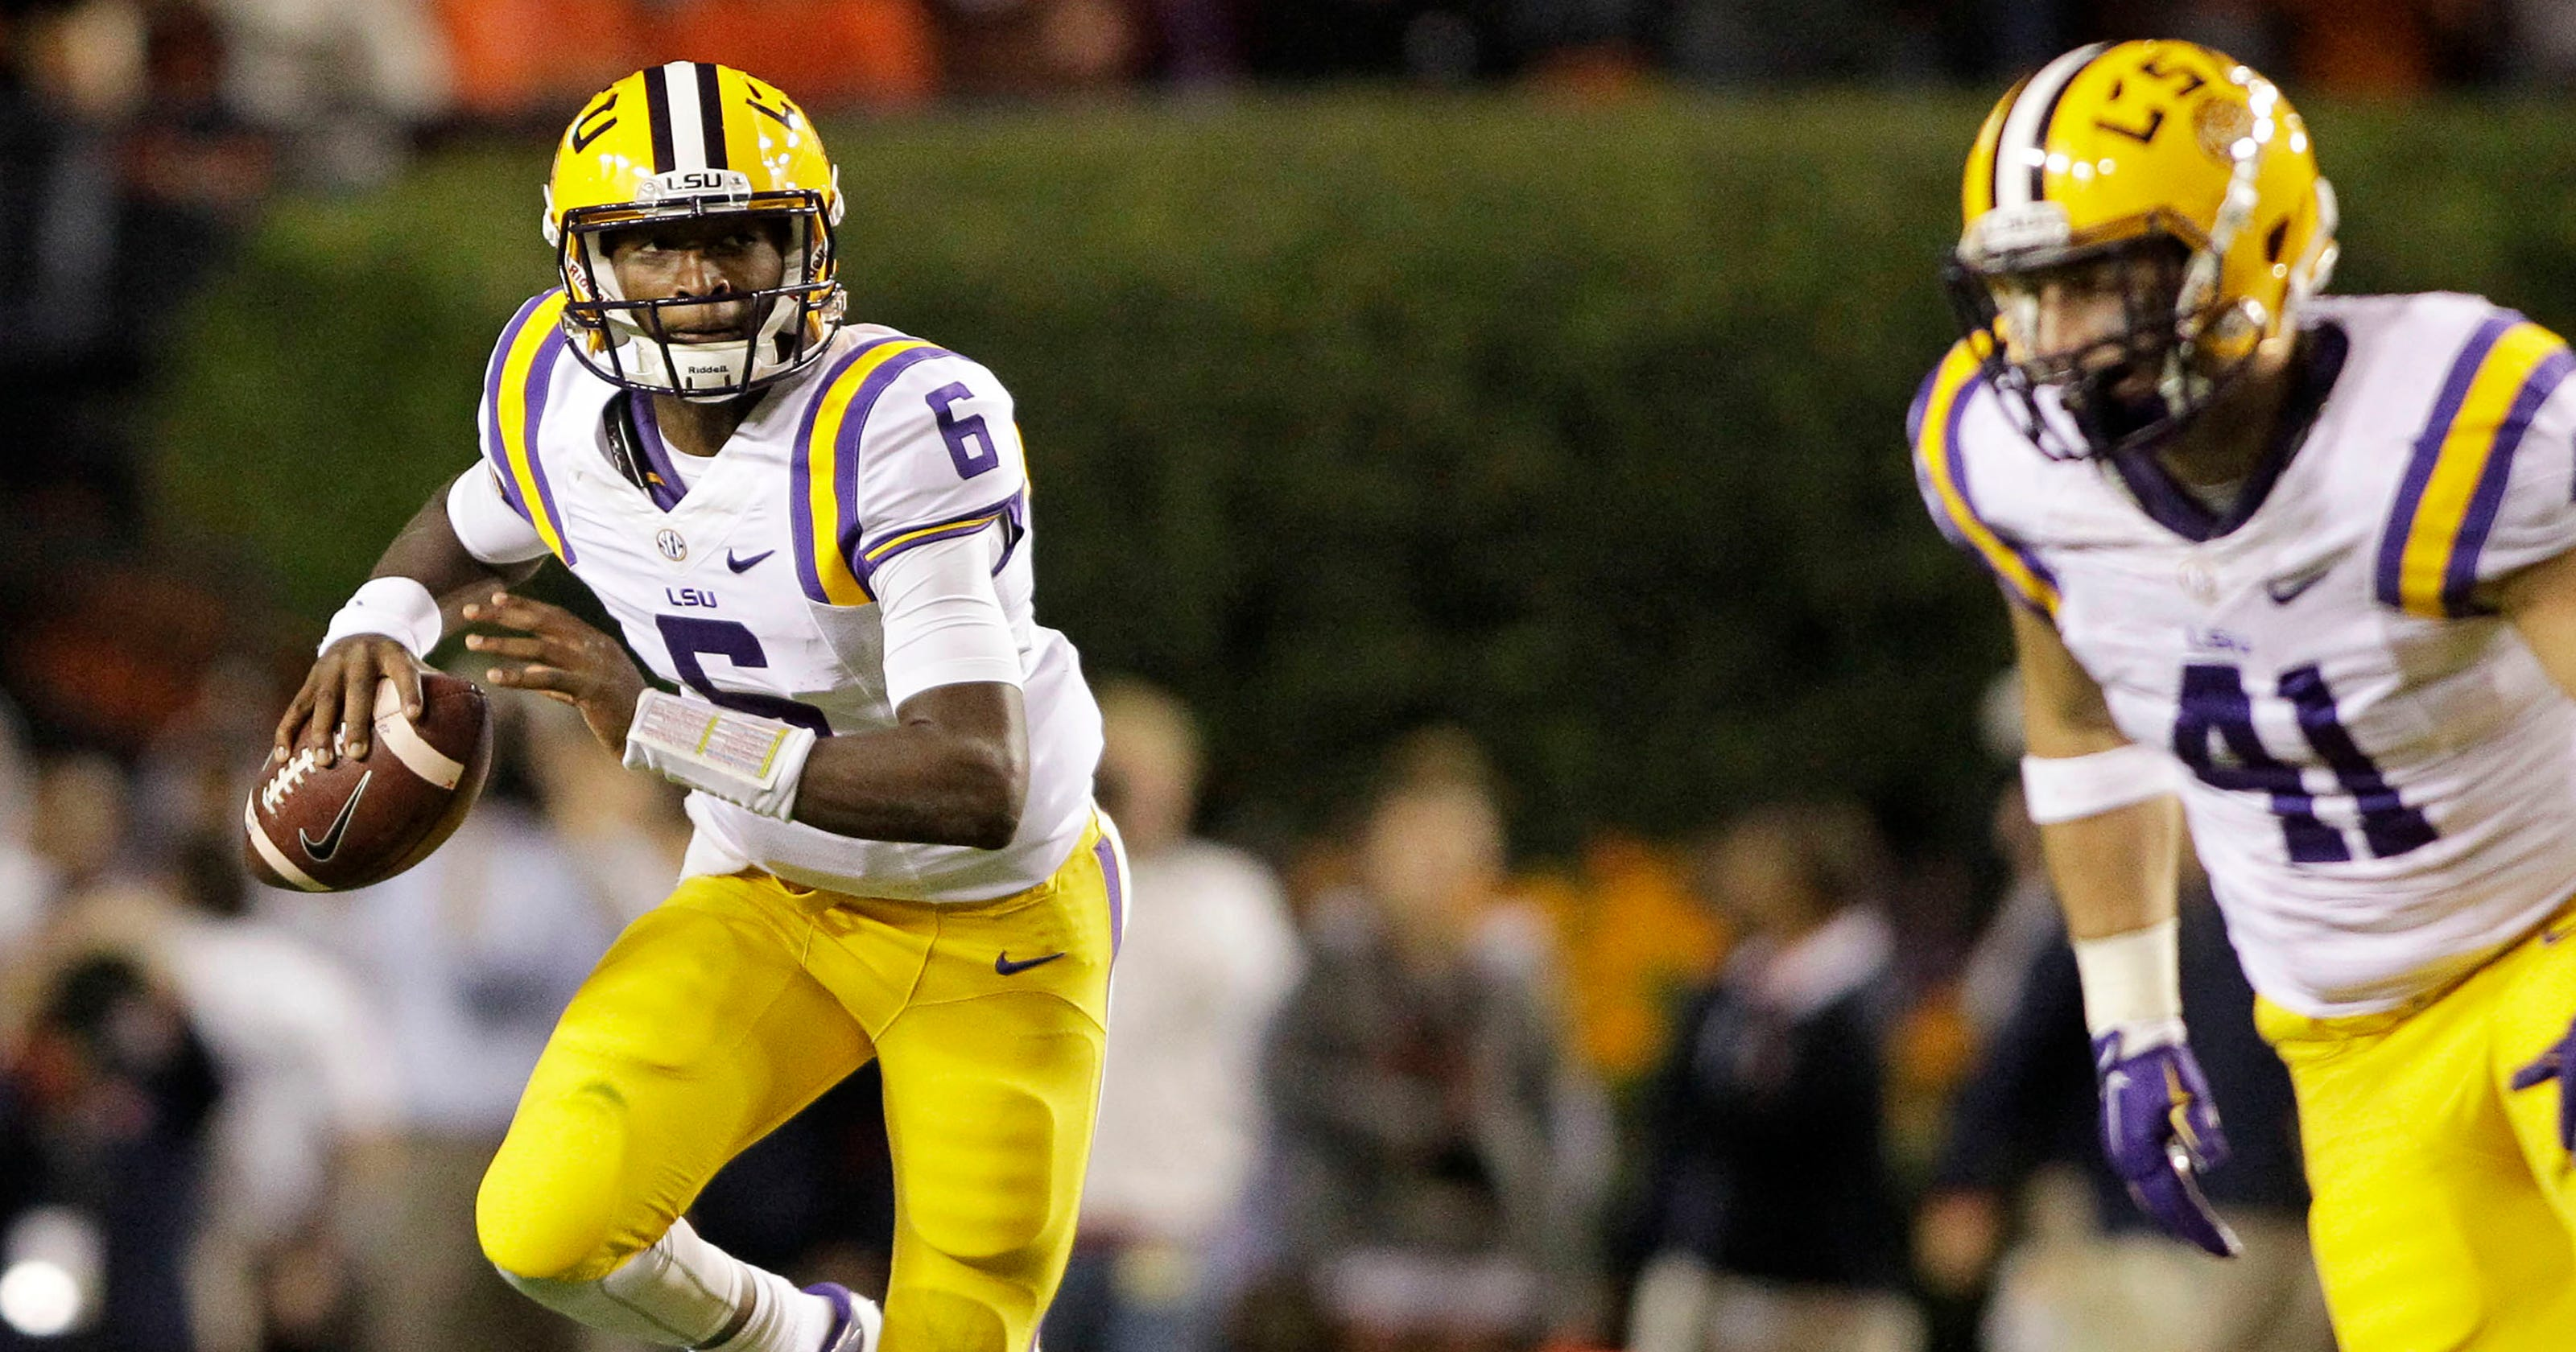 Brandon Harris leads LSU to 63-7 rout over New Mexico State